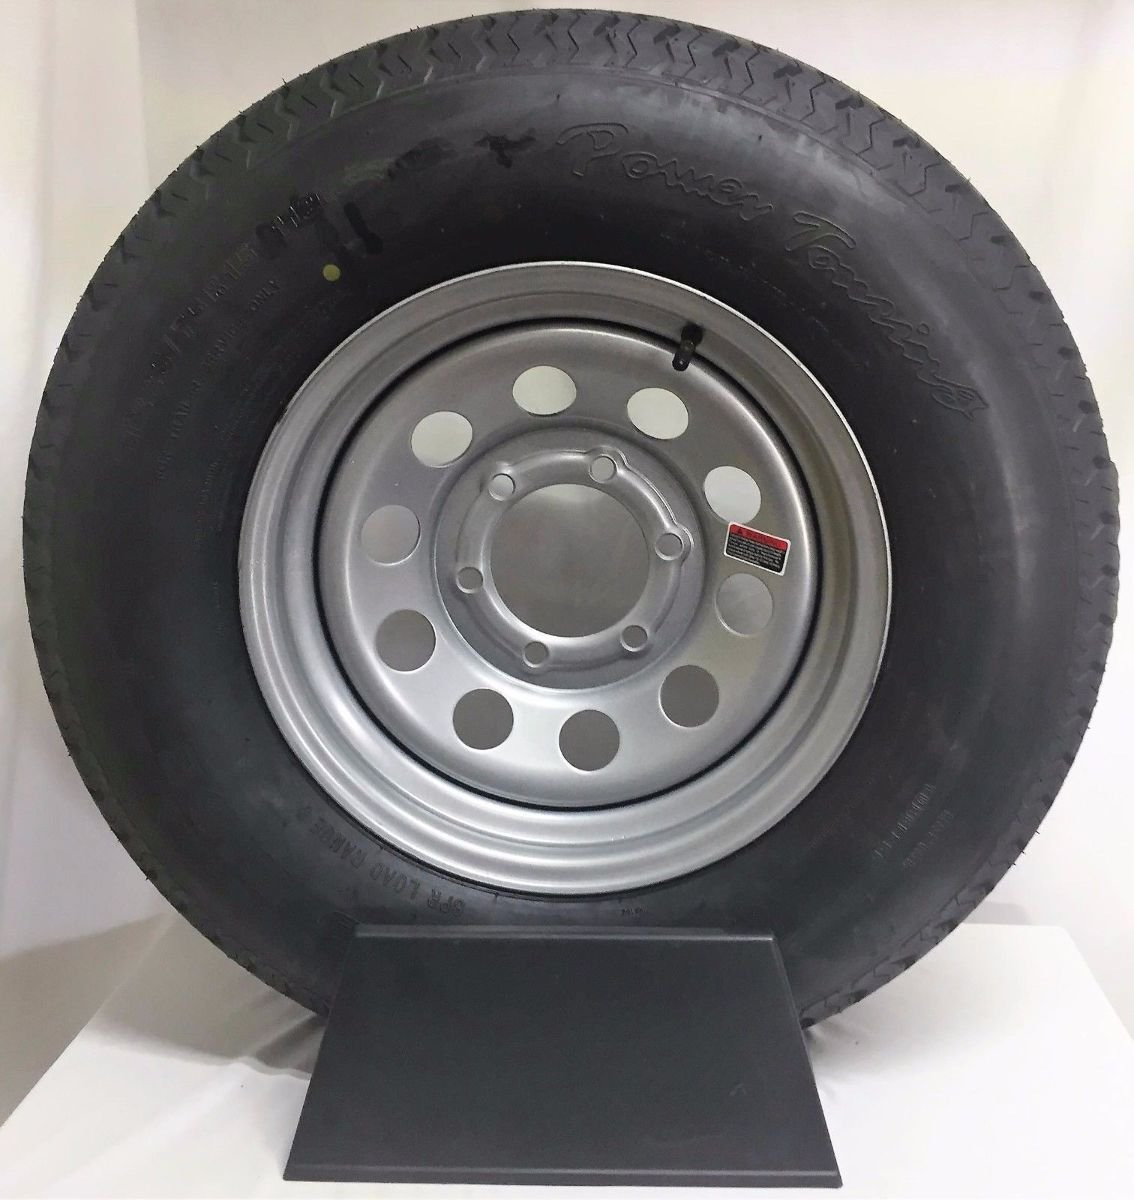 15 Silver Mod Trailer Wheel 6 Lug with Radial ST225/75R15 Tire Mounted (6x5.5) Bolt Circle Wheels Express Inc 15655sm225R